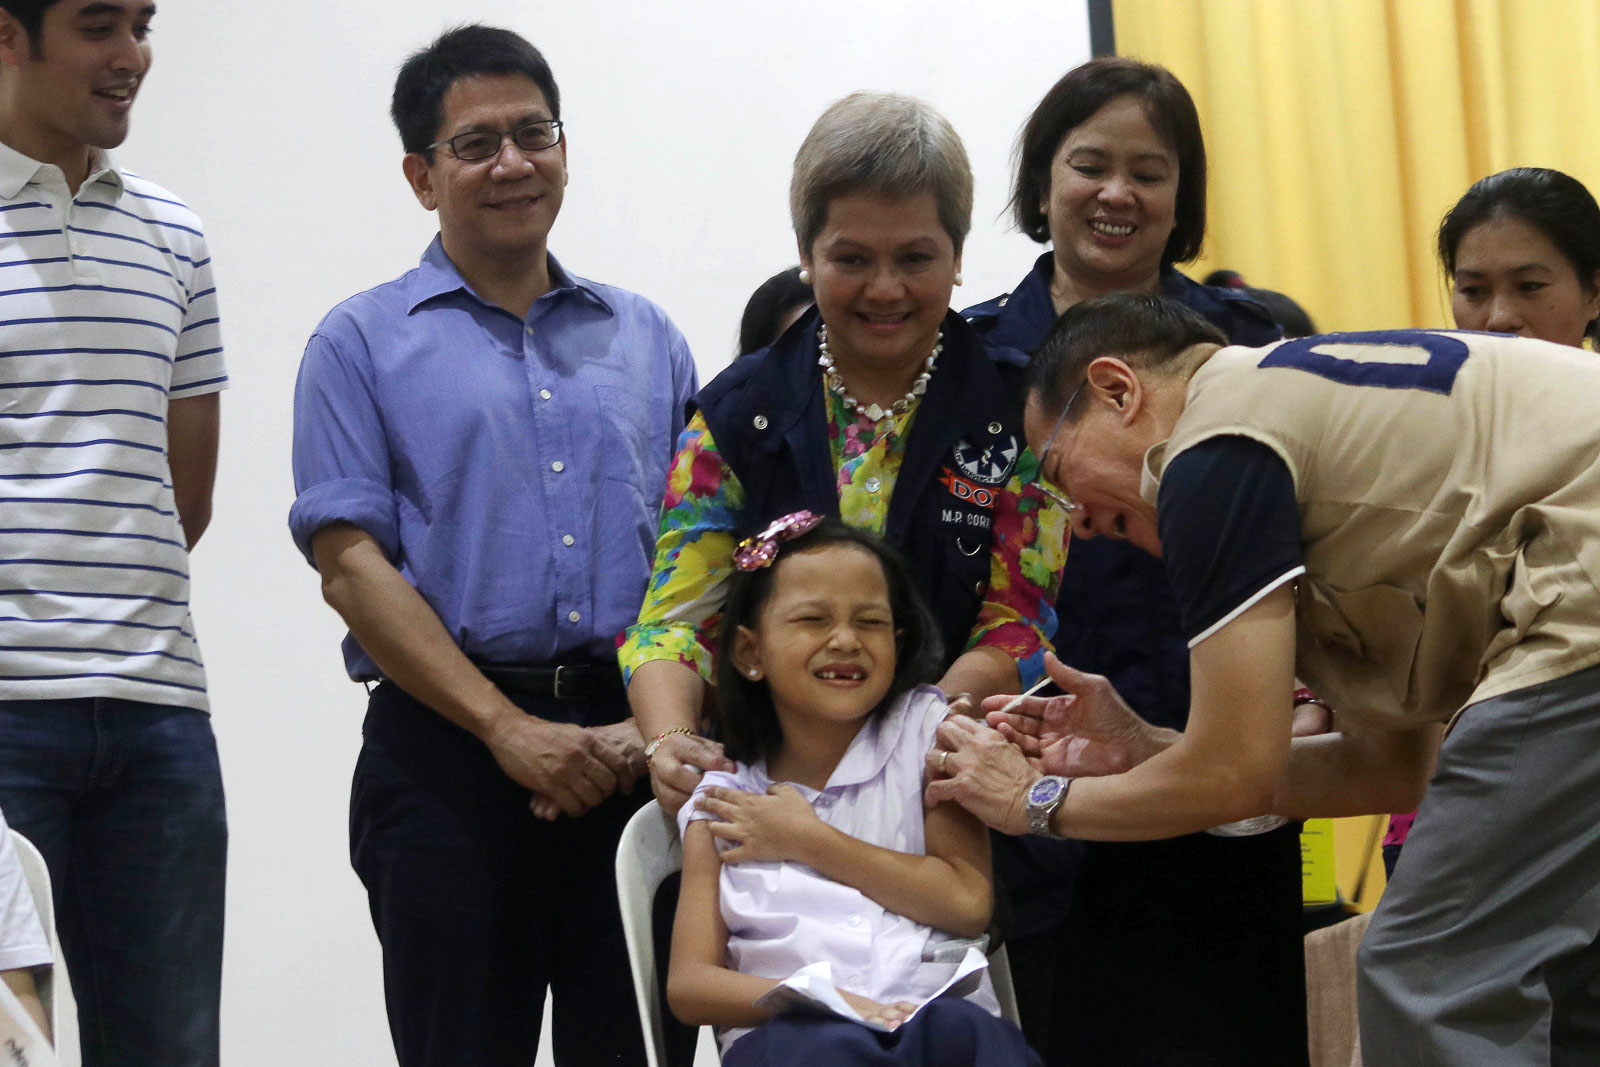 Department of Health Secretary Francisco Duque III administers a measles vaccine to a student during the school-based immunization campaign attended by local official led by city Mayor Vico Sotto and Representative Roman Romulo at the Pasig Elementary School on July 16, 2019. Photo by Ben Nabong/Rappler